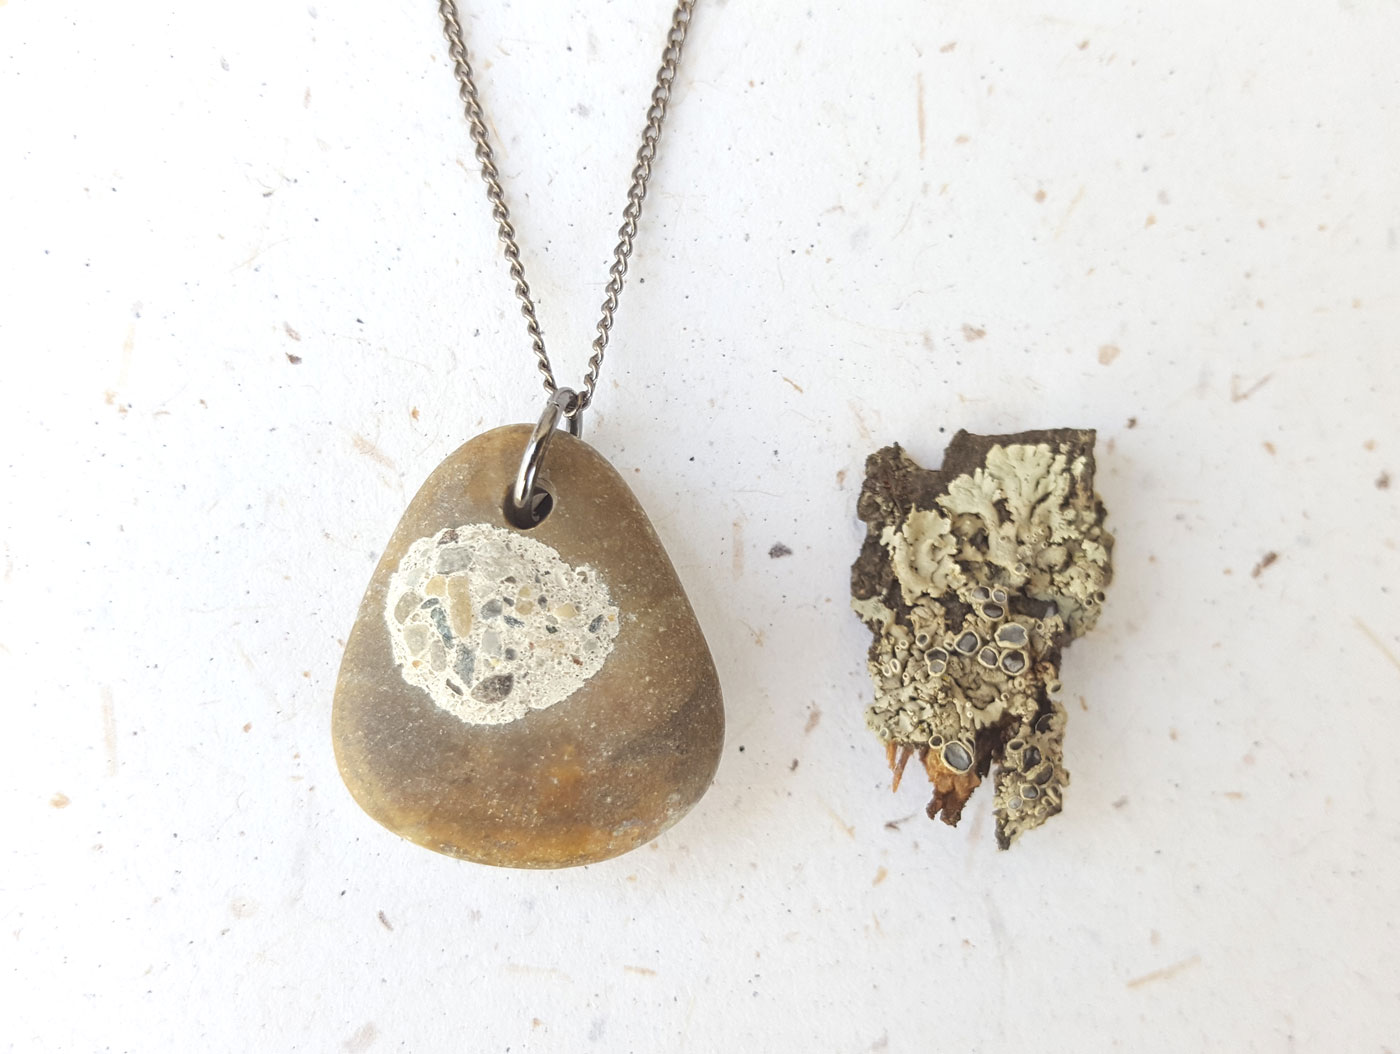 Beach stone necklace by Jenny Hoople of Authentic Arts